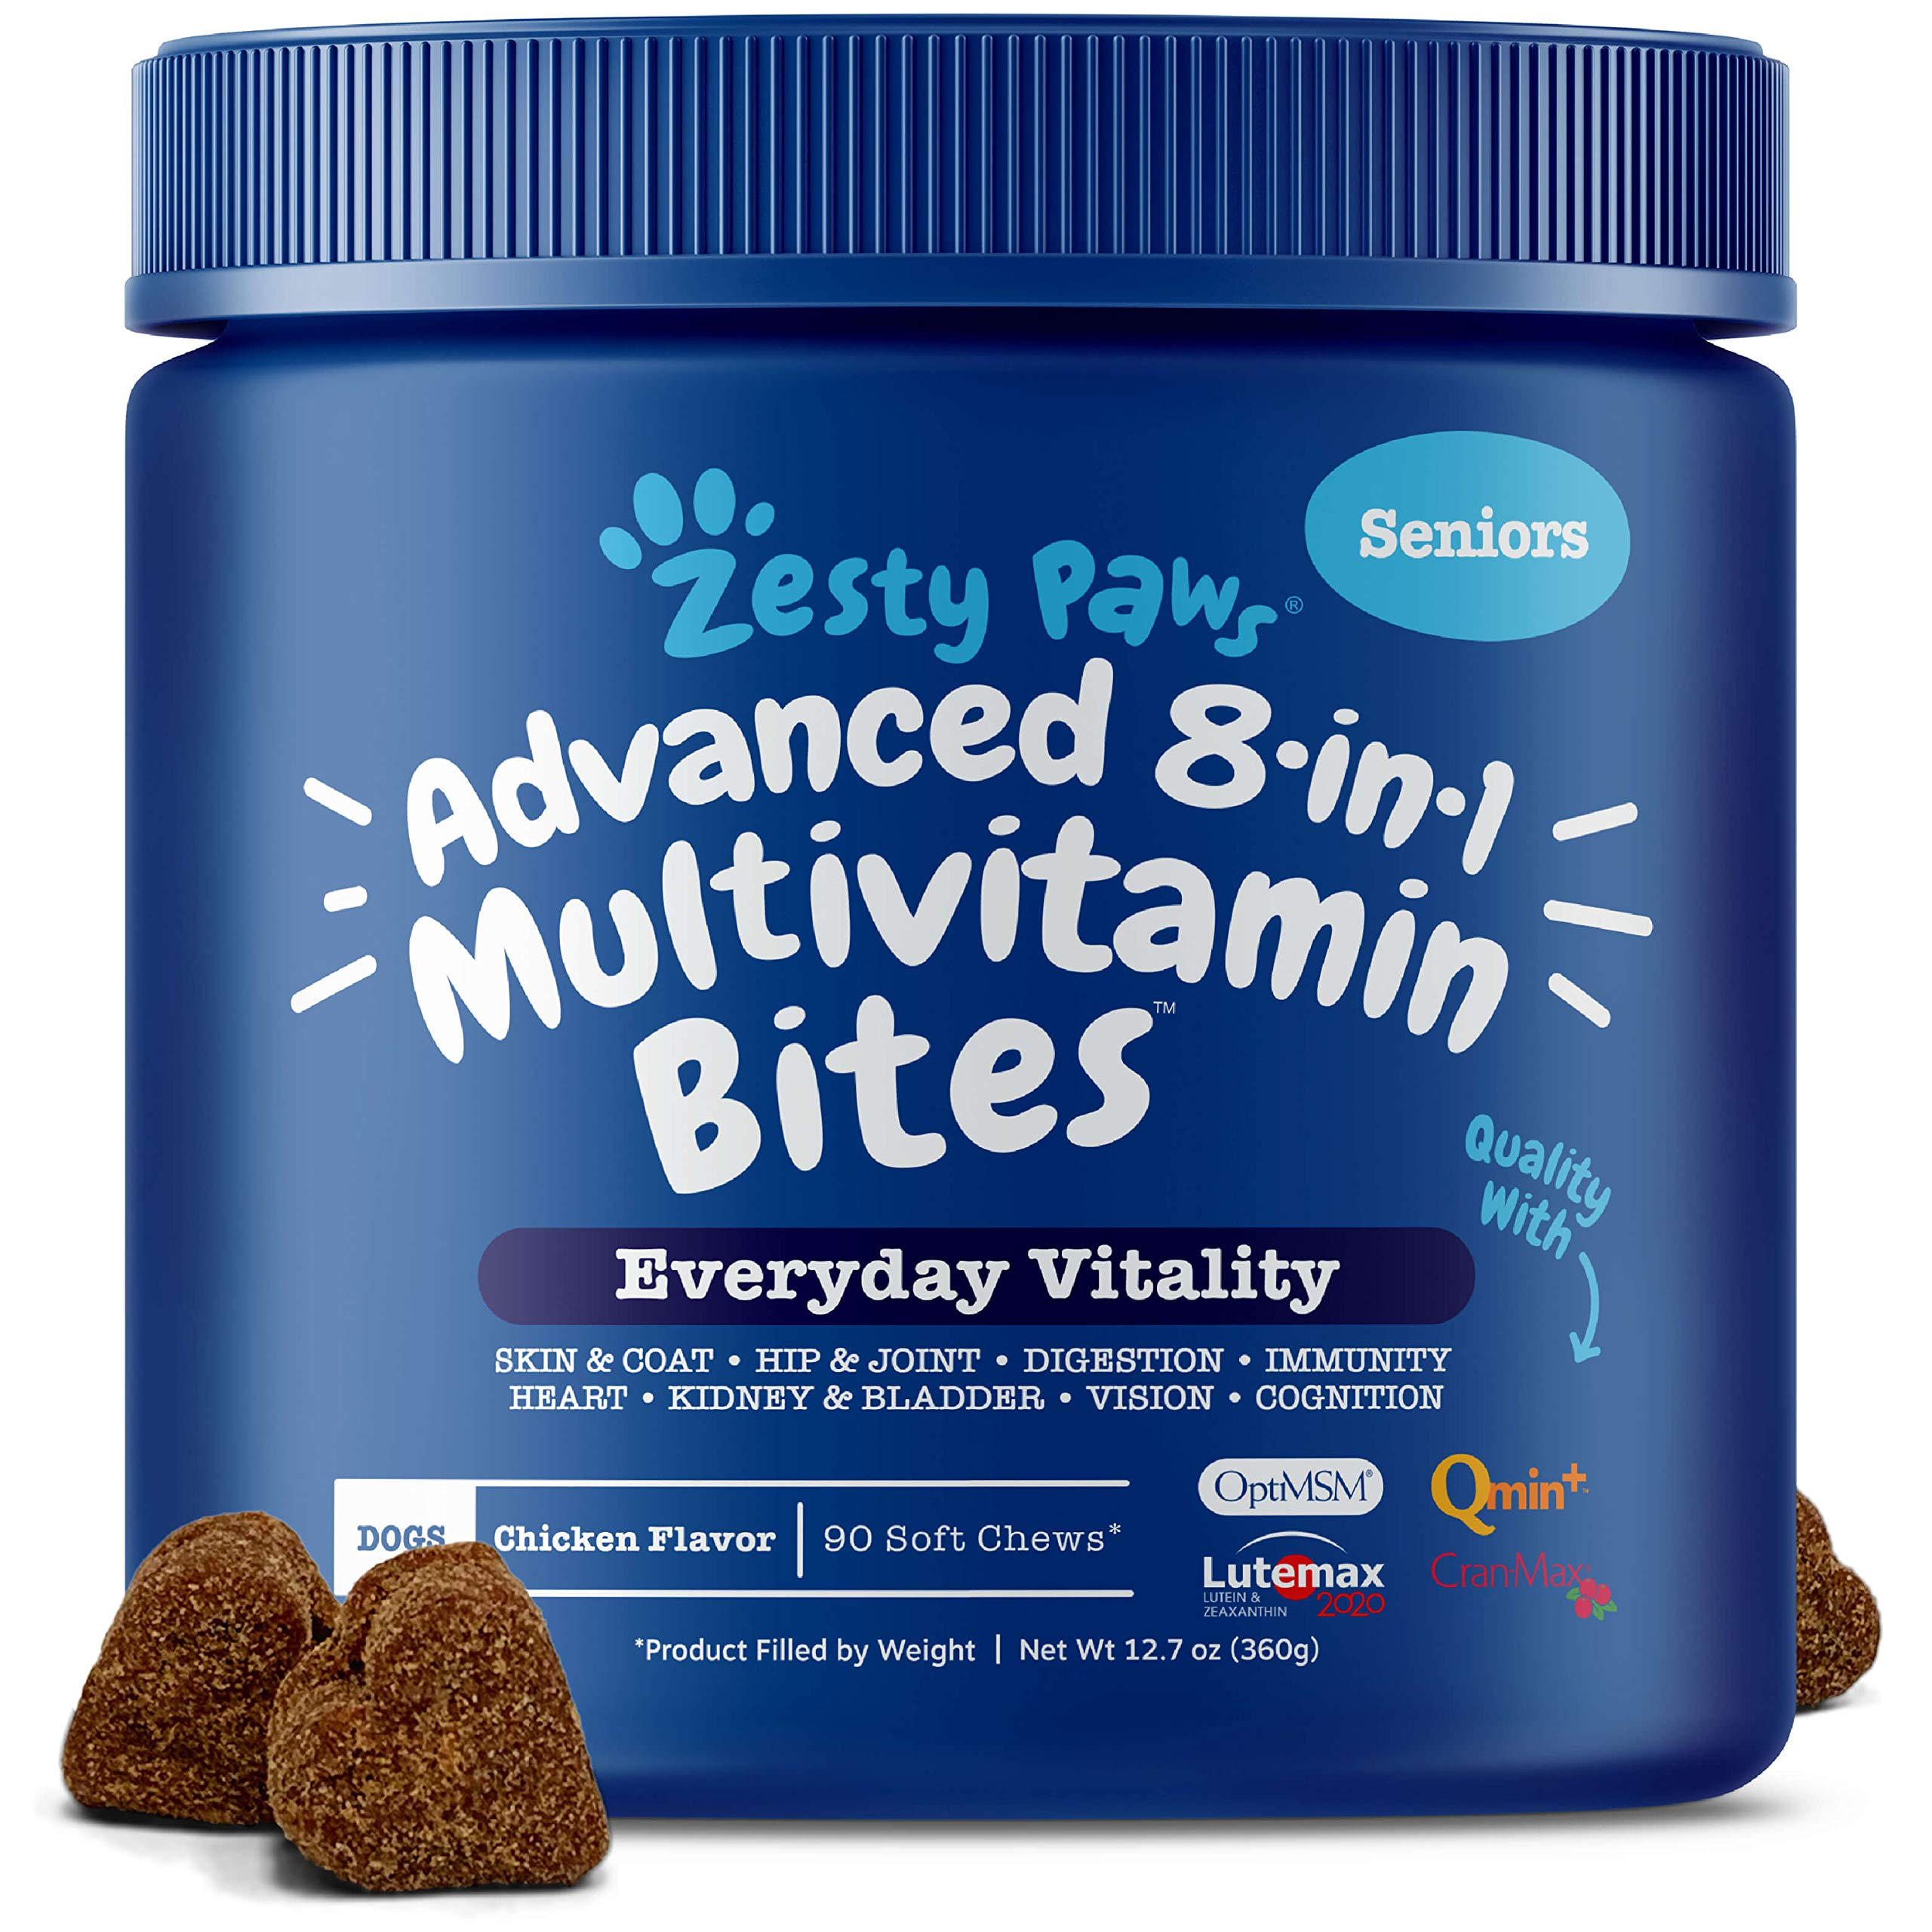 Zesty Paws Senior Advanced Multivitamin for Dogs - Glucosamine Chondroitin for Hip & Joint Arthritis Relief - Dog Vitamins & Fish Oil for Skin & Coat - Digestive Enzymes MSM + CoQ10-90 Chew Treats by Zesty Paws